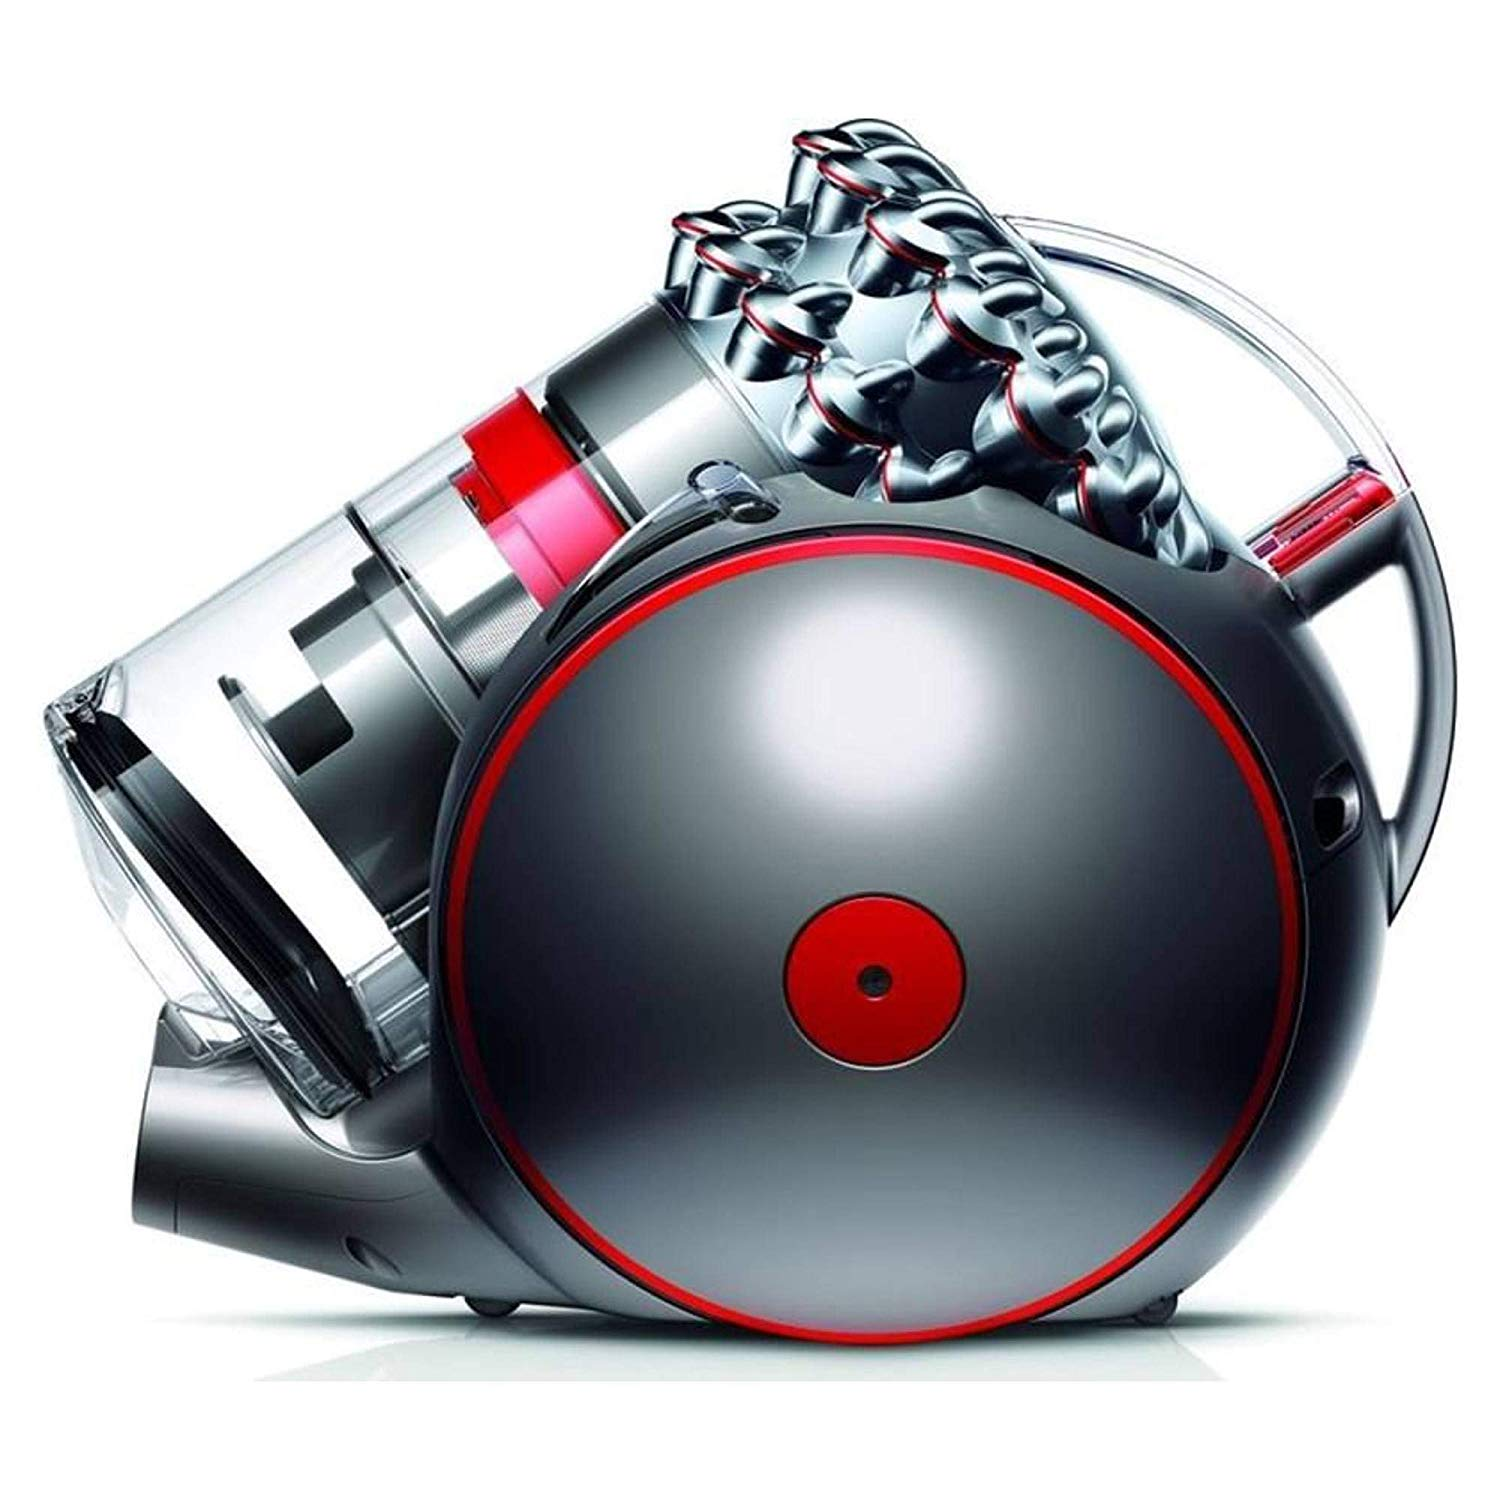 Dyson CY26 Cinetic Big Ball Animal 2 Cylinder Vacuum Cleaner, Red, Large